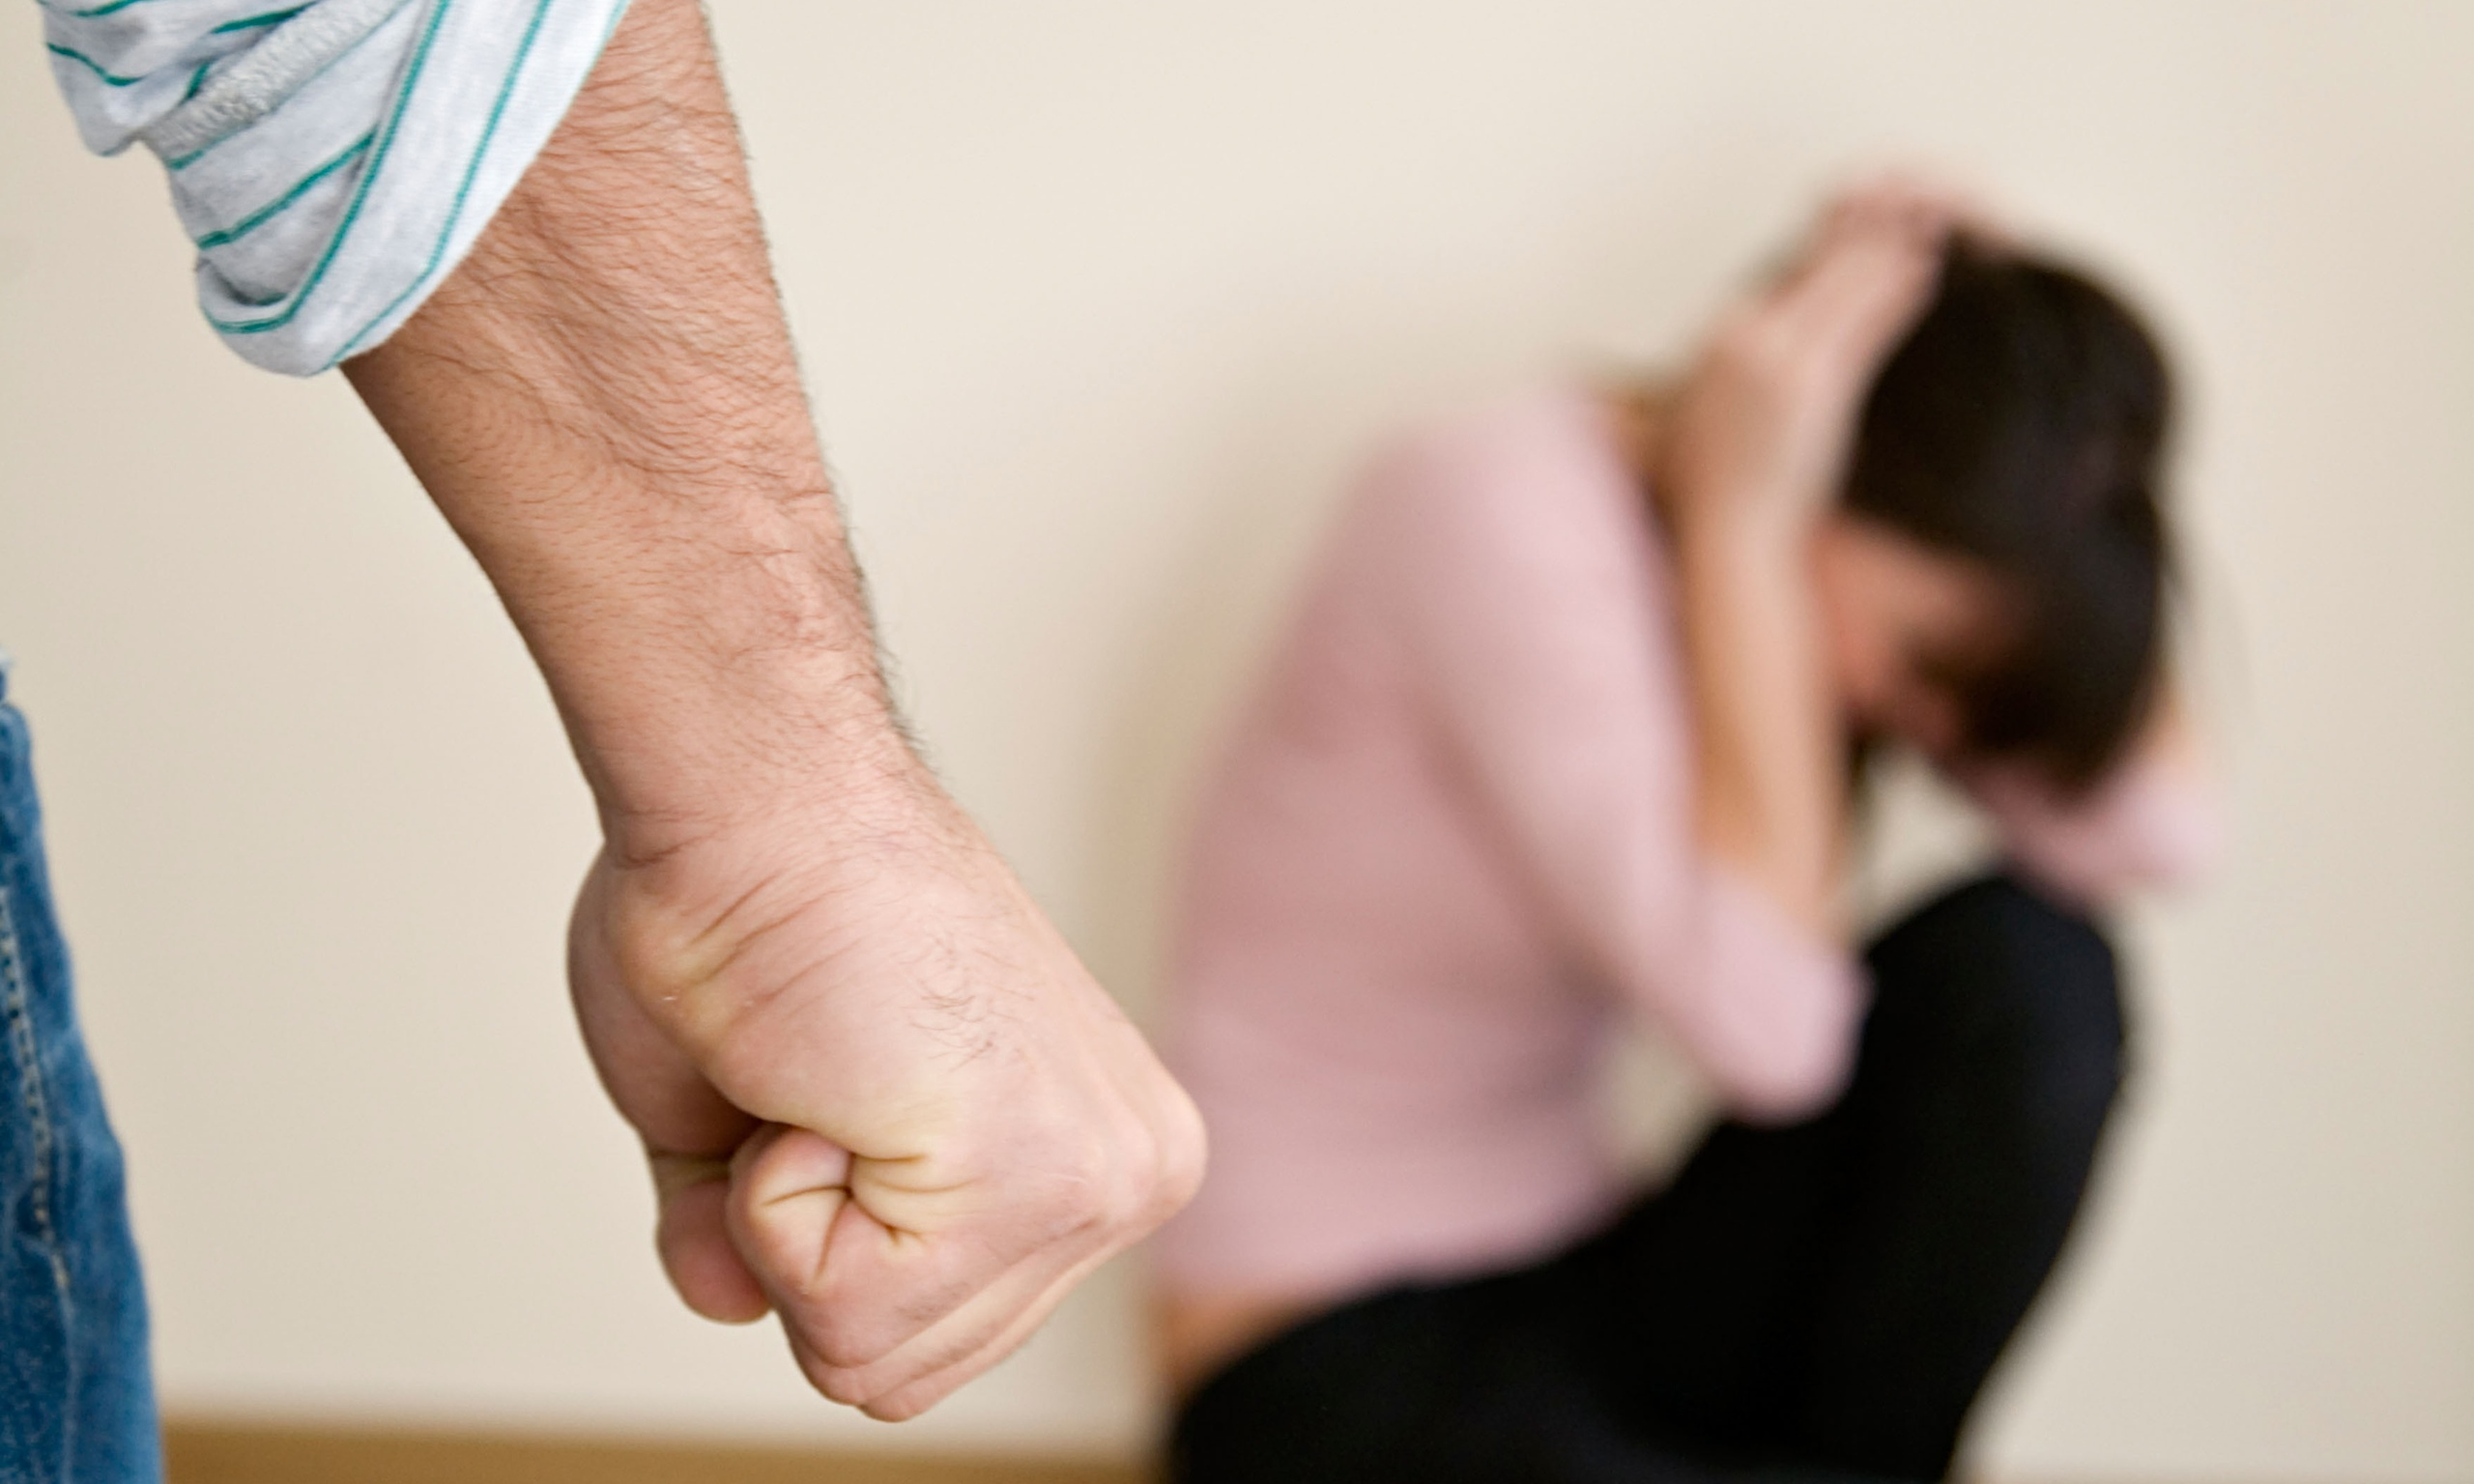 how to protect yourself from domestic violence